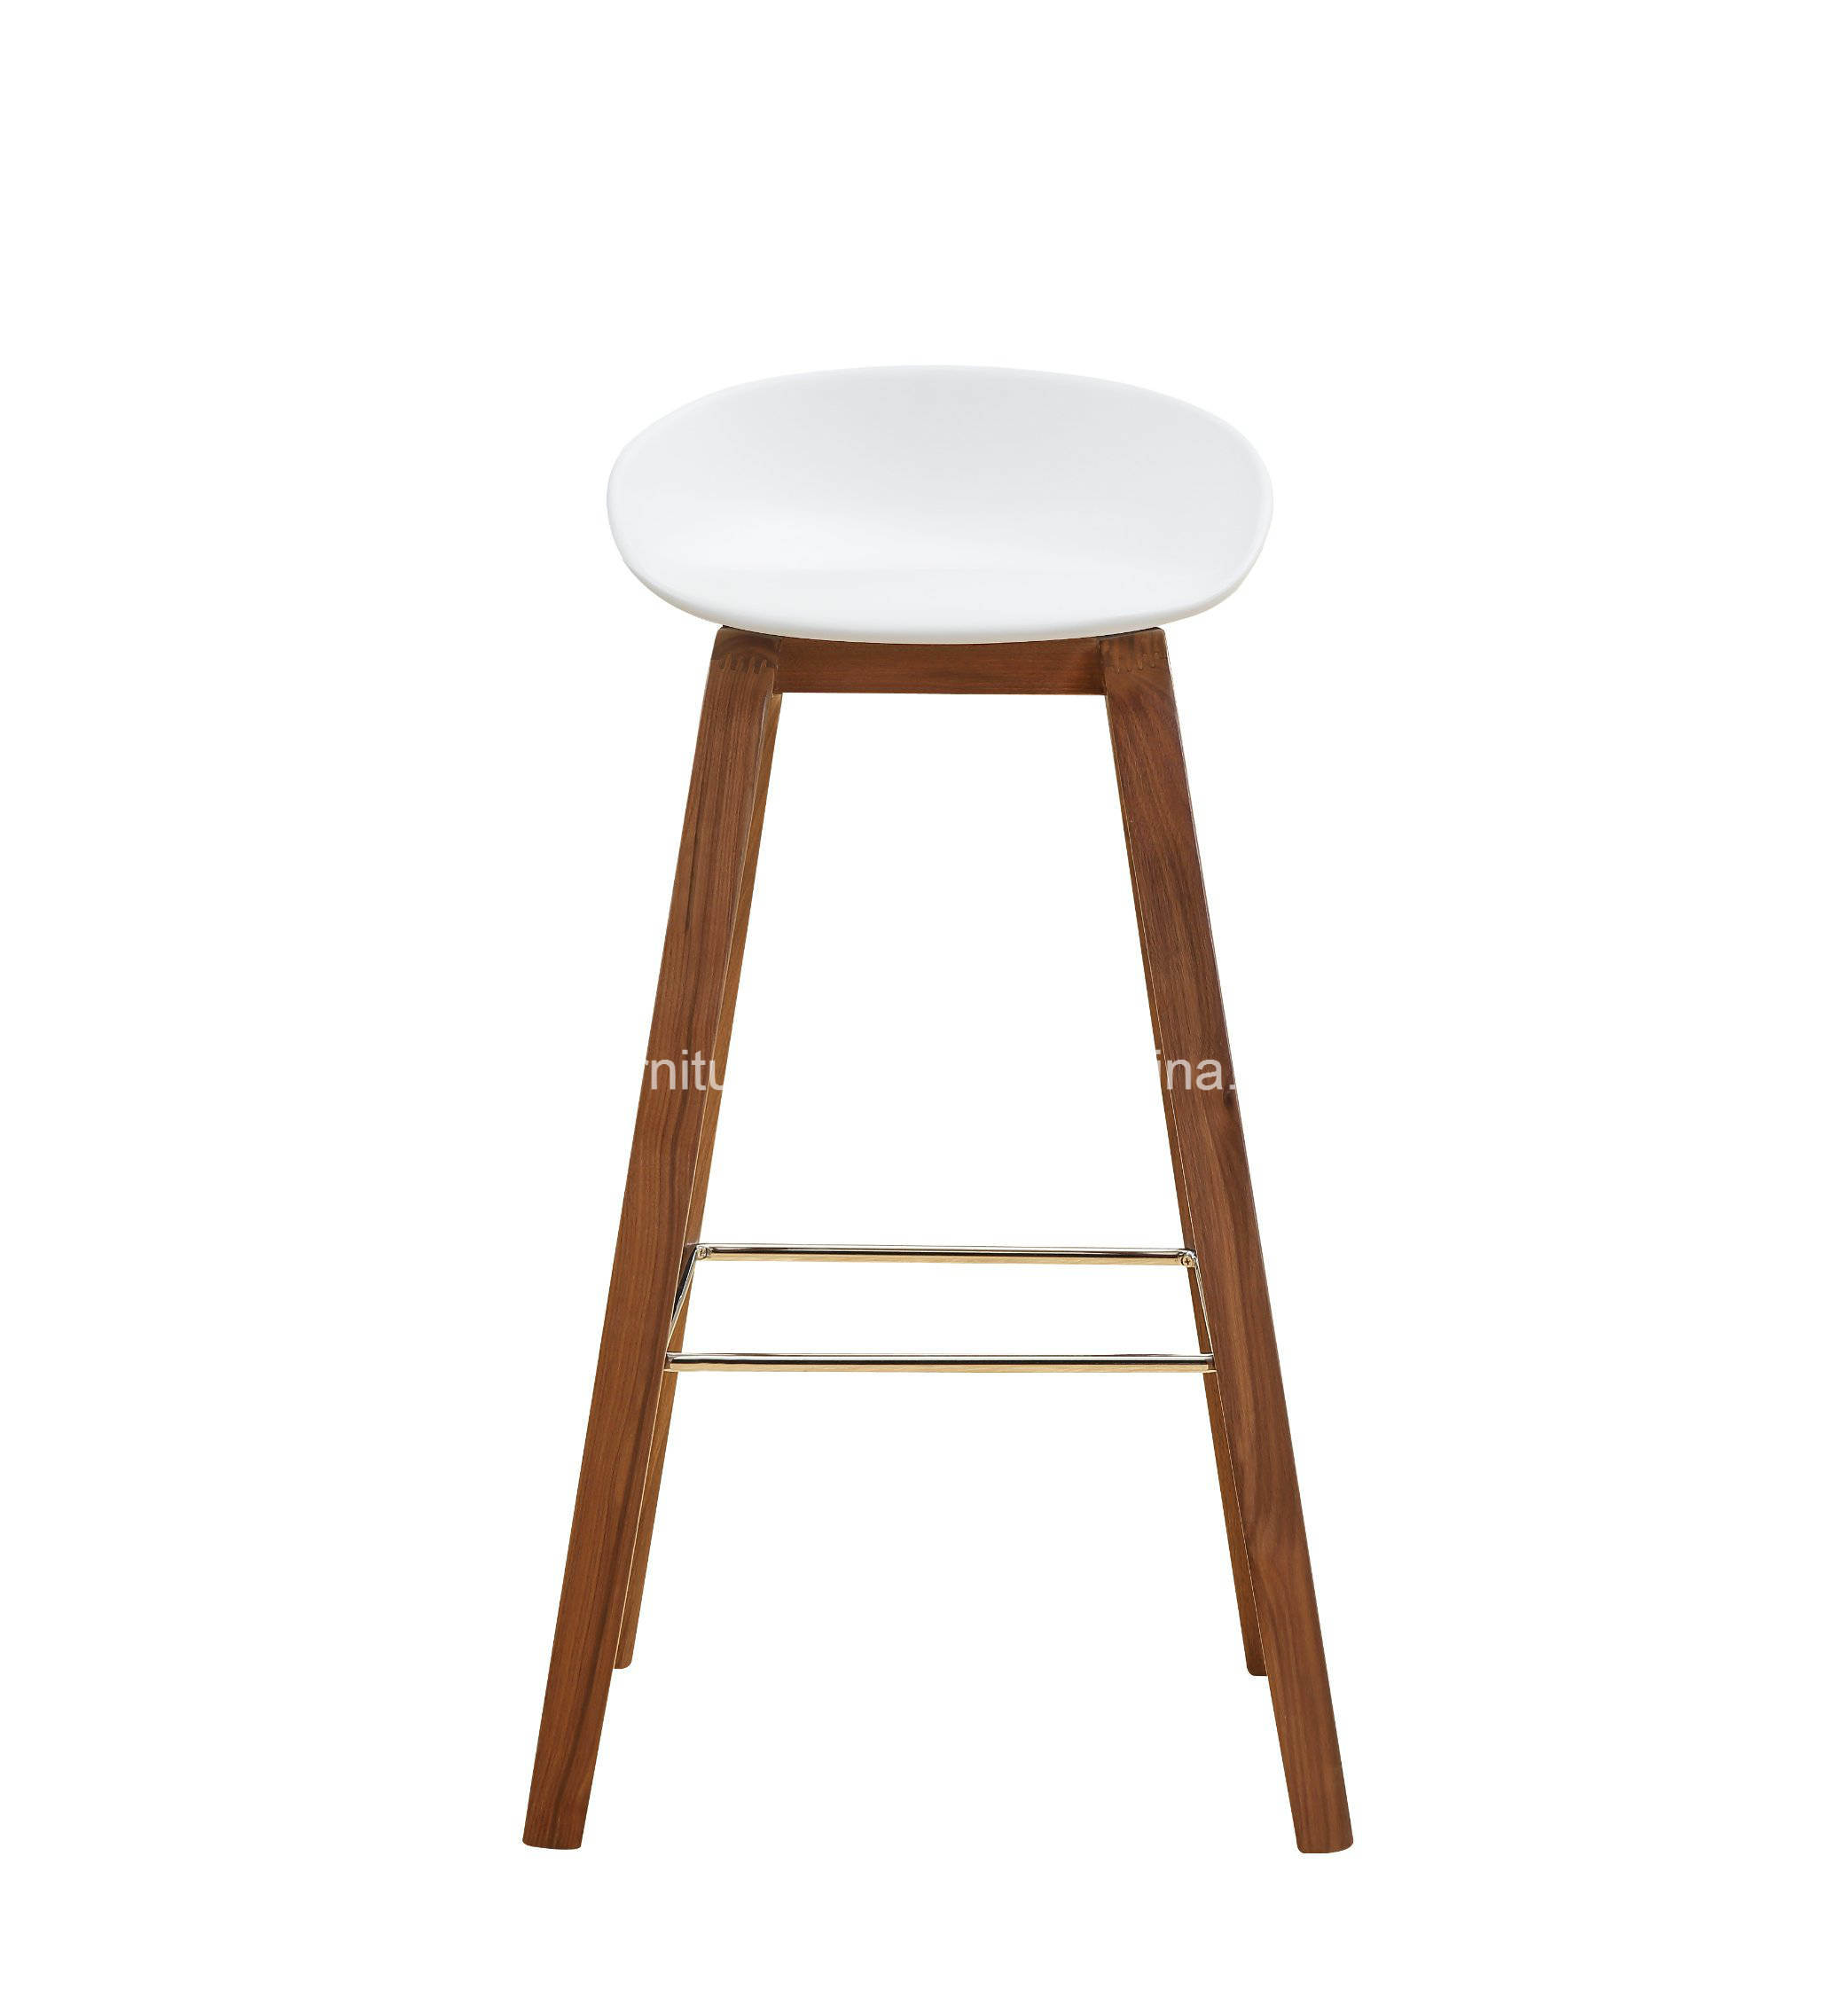 China Leisure Plastic Seat Top Wooden Leg Bar Stool Living Room ...